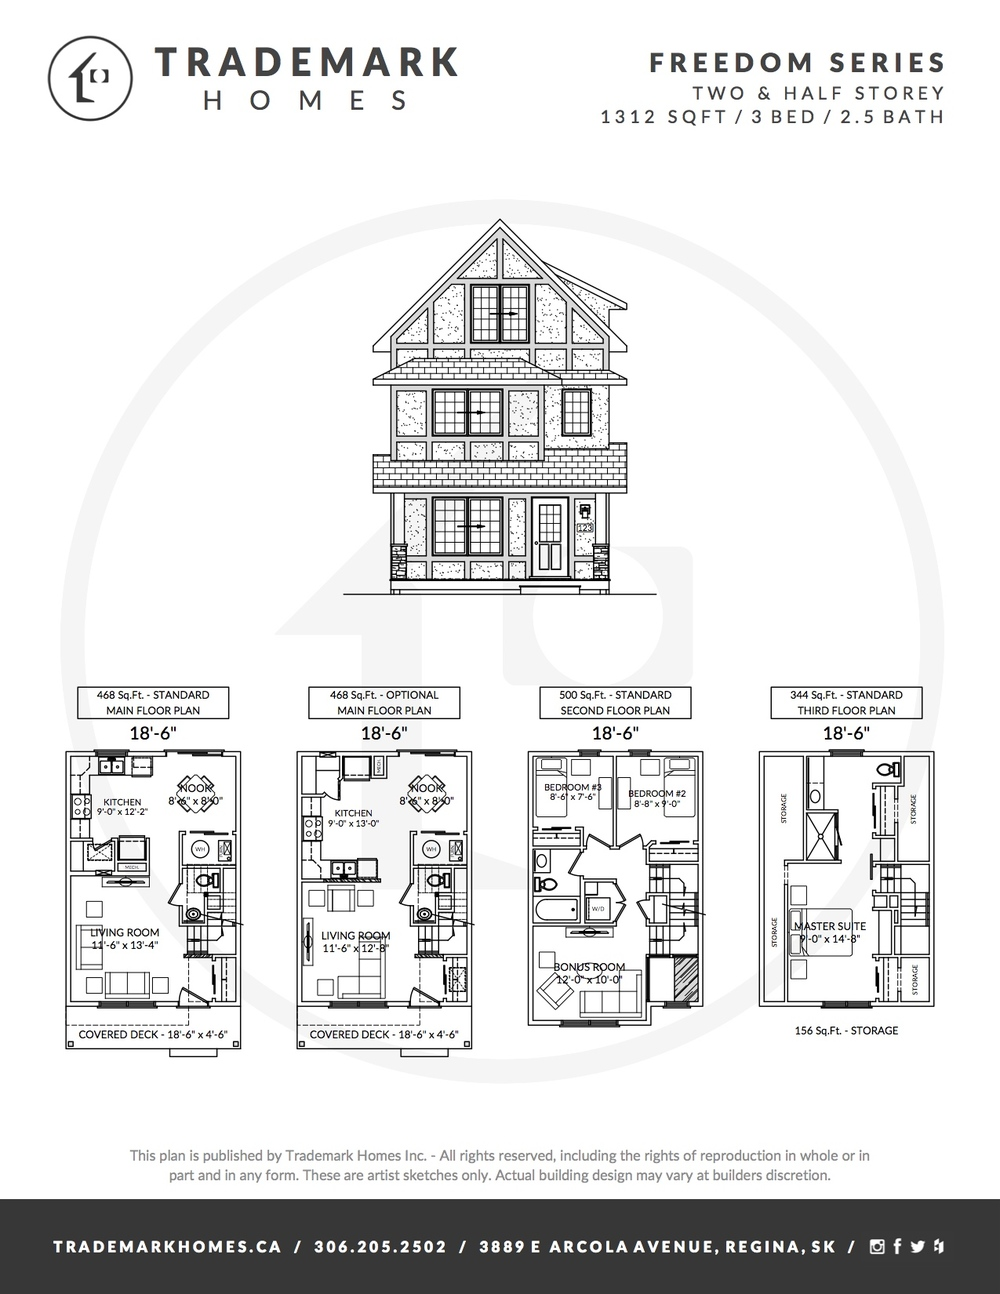 Freedom Series - 2 & Half Storey - Floorplan - Regina Home Builder